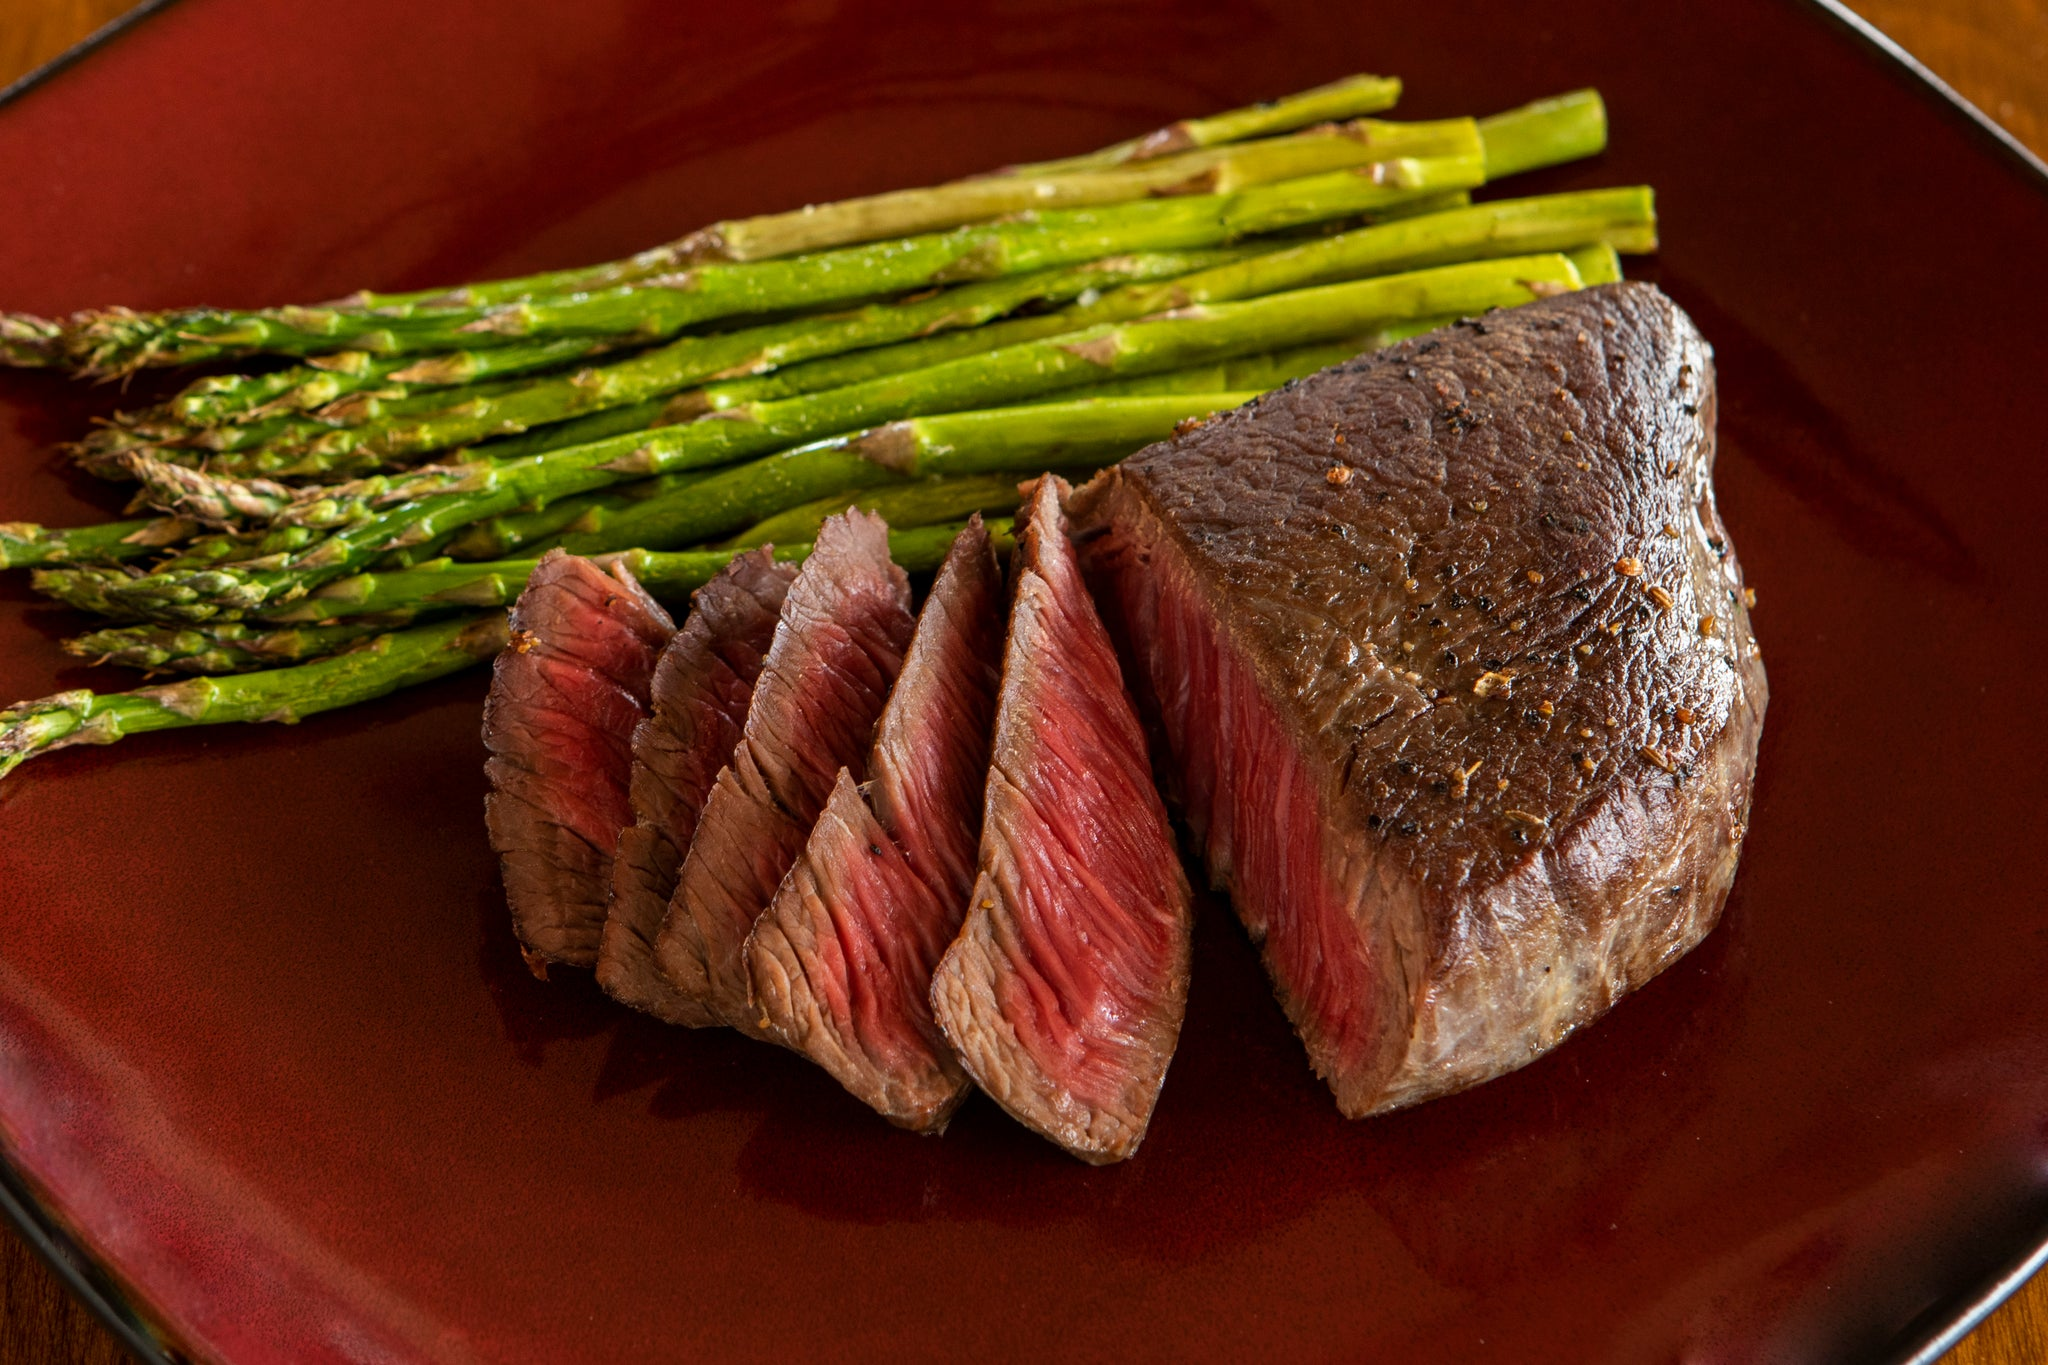 sliced cooked ostrich fan filet next to asparagus